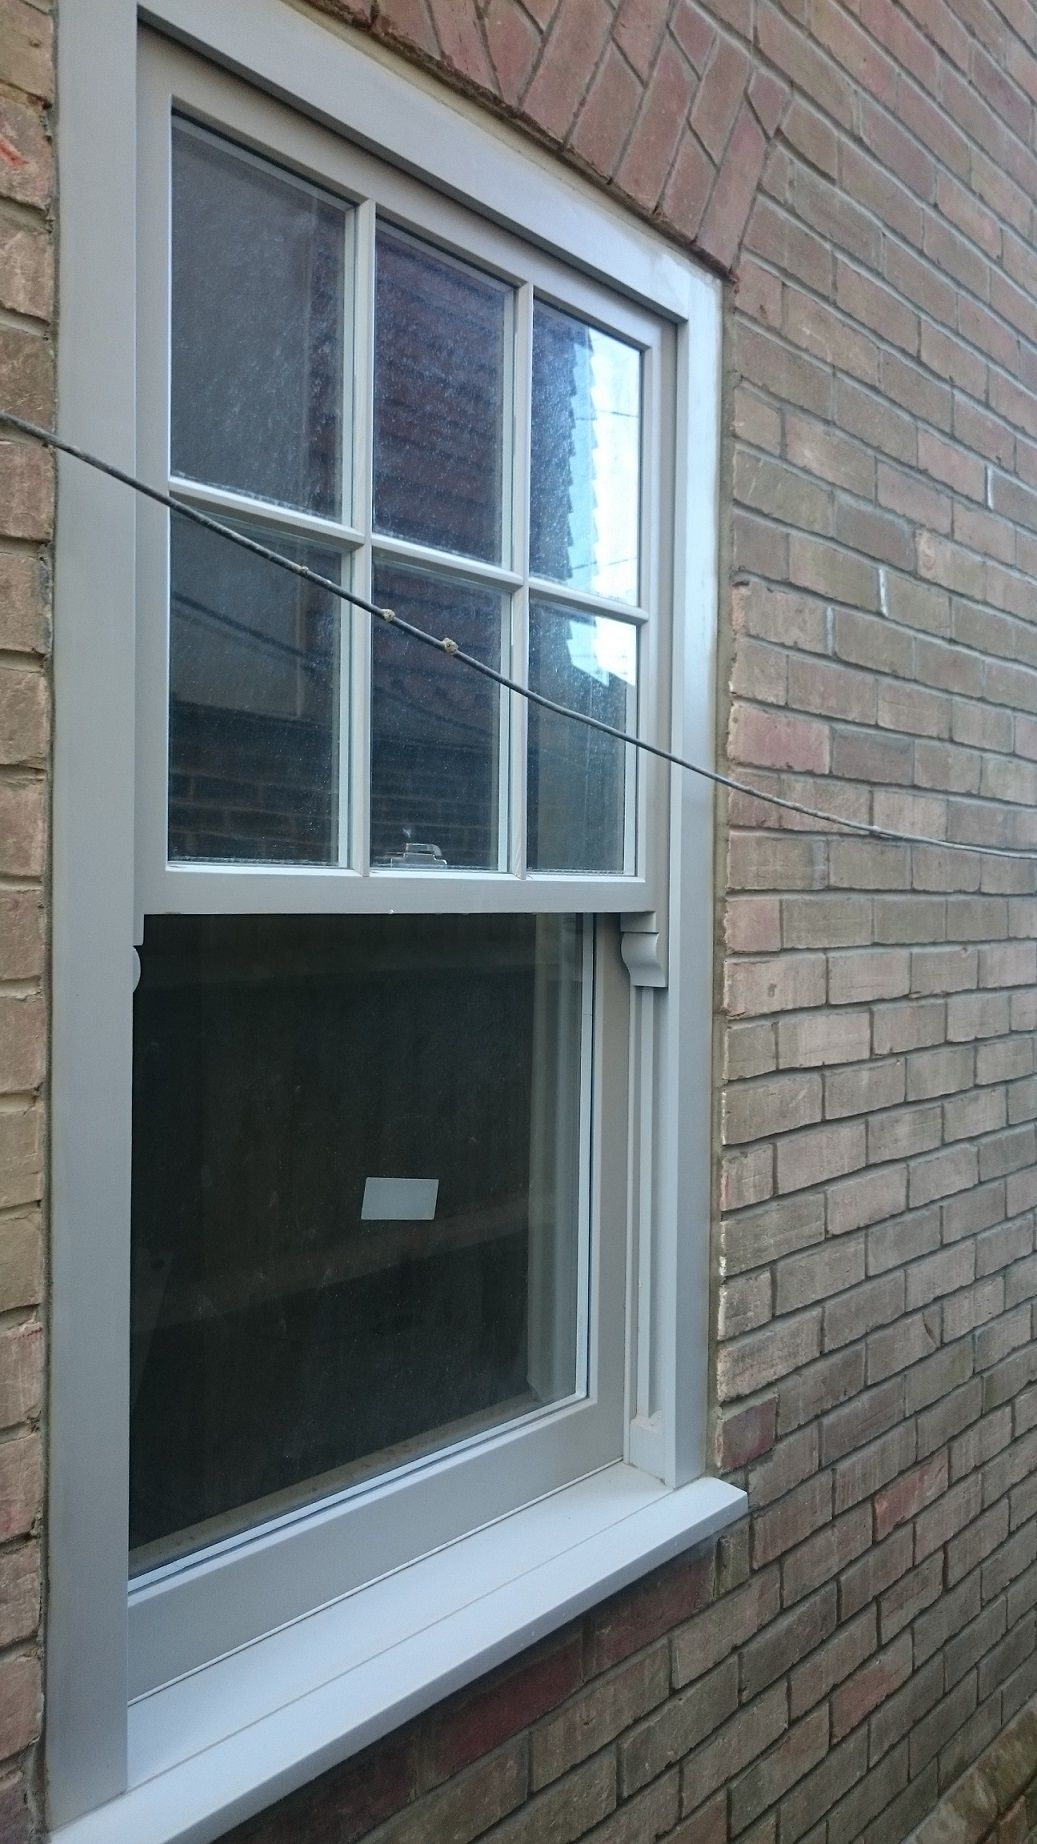 6 Over 1 Sash Windows Finished In Ral 7044 Supplied By